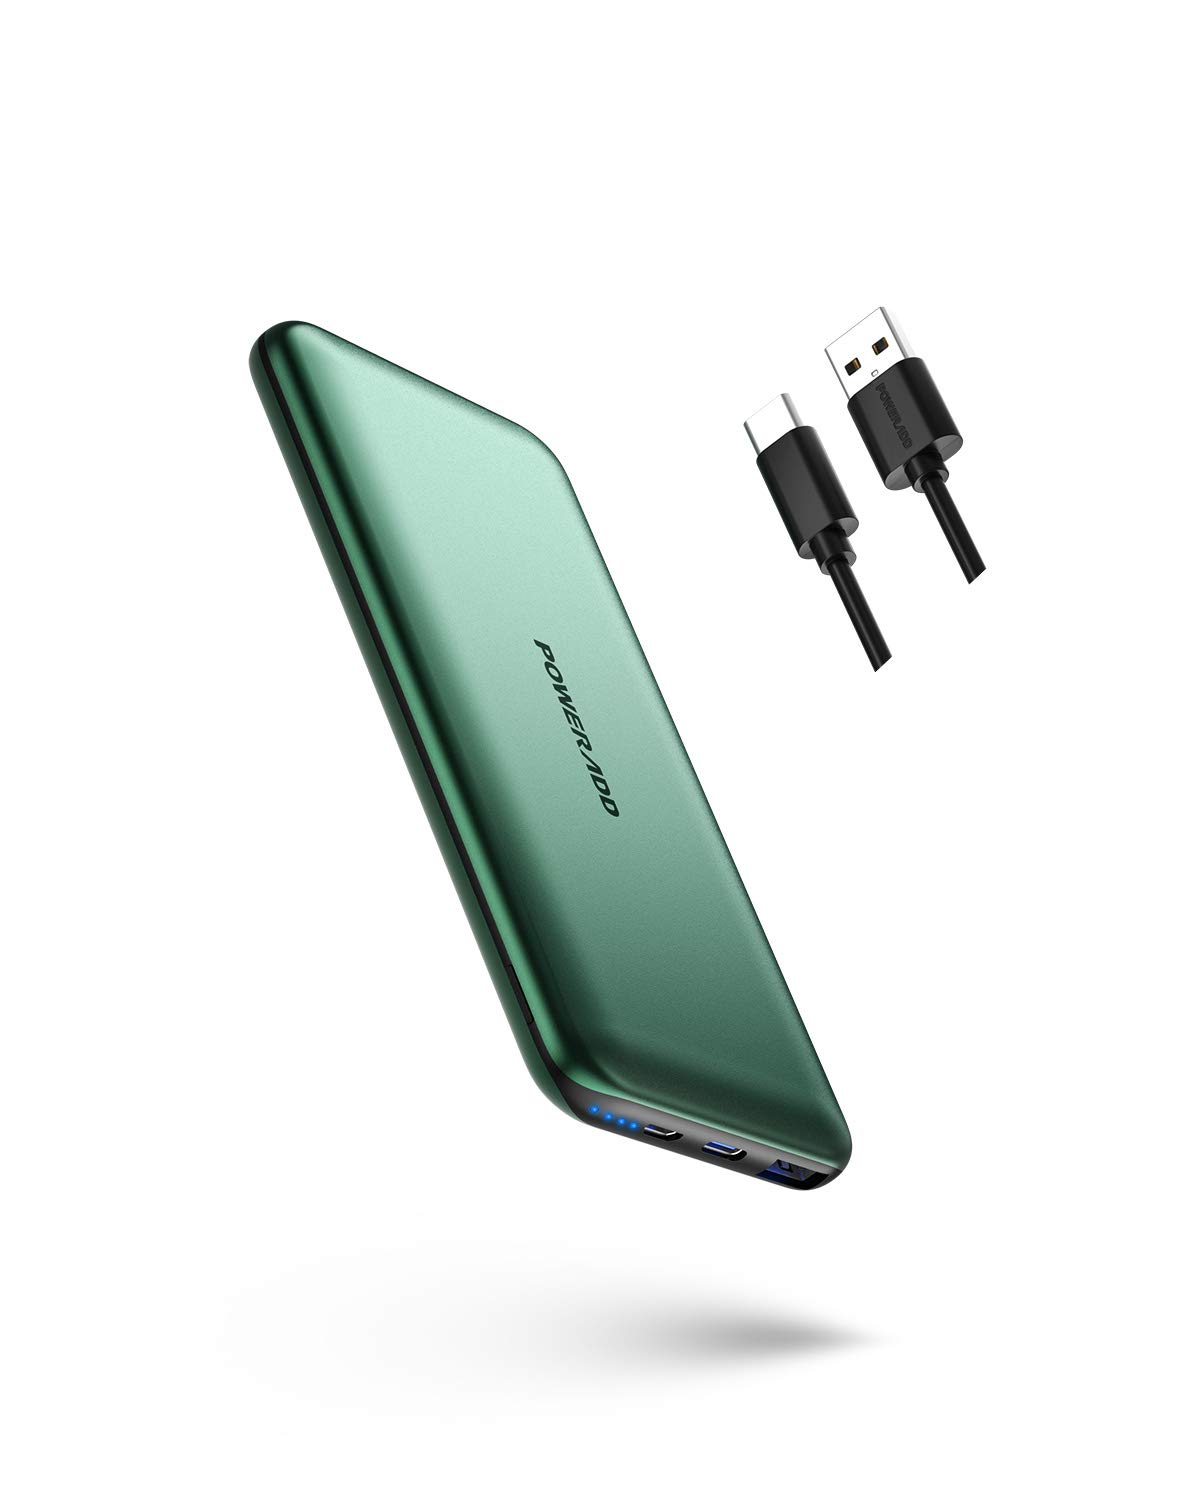 Portable Charger,POWERADD 20W PD&QC 3.0 10000mAh Slim Fast Charging Power Bank with USB C Input/Output External Battery Pack for iPhone 12/Mini/X/XR Samsung S20/S10 Google AirPods iPad Pro and More